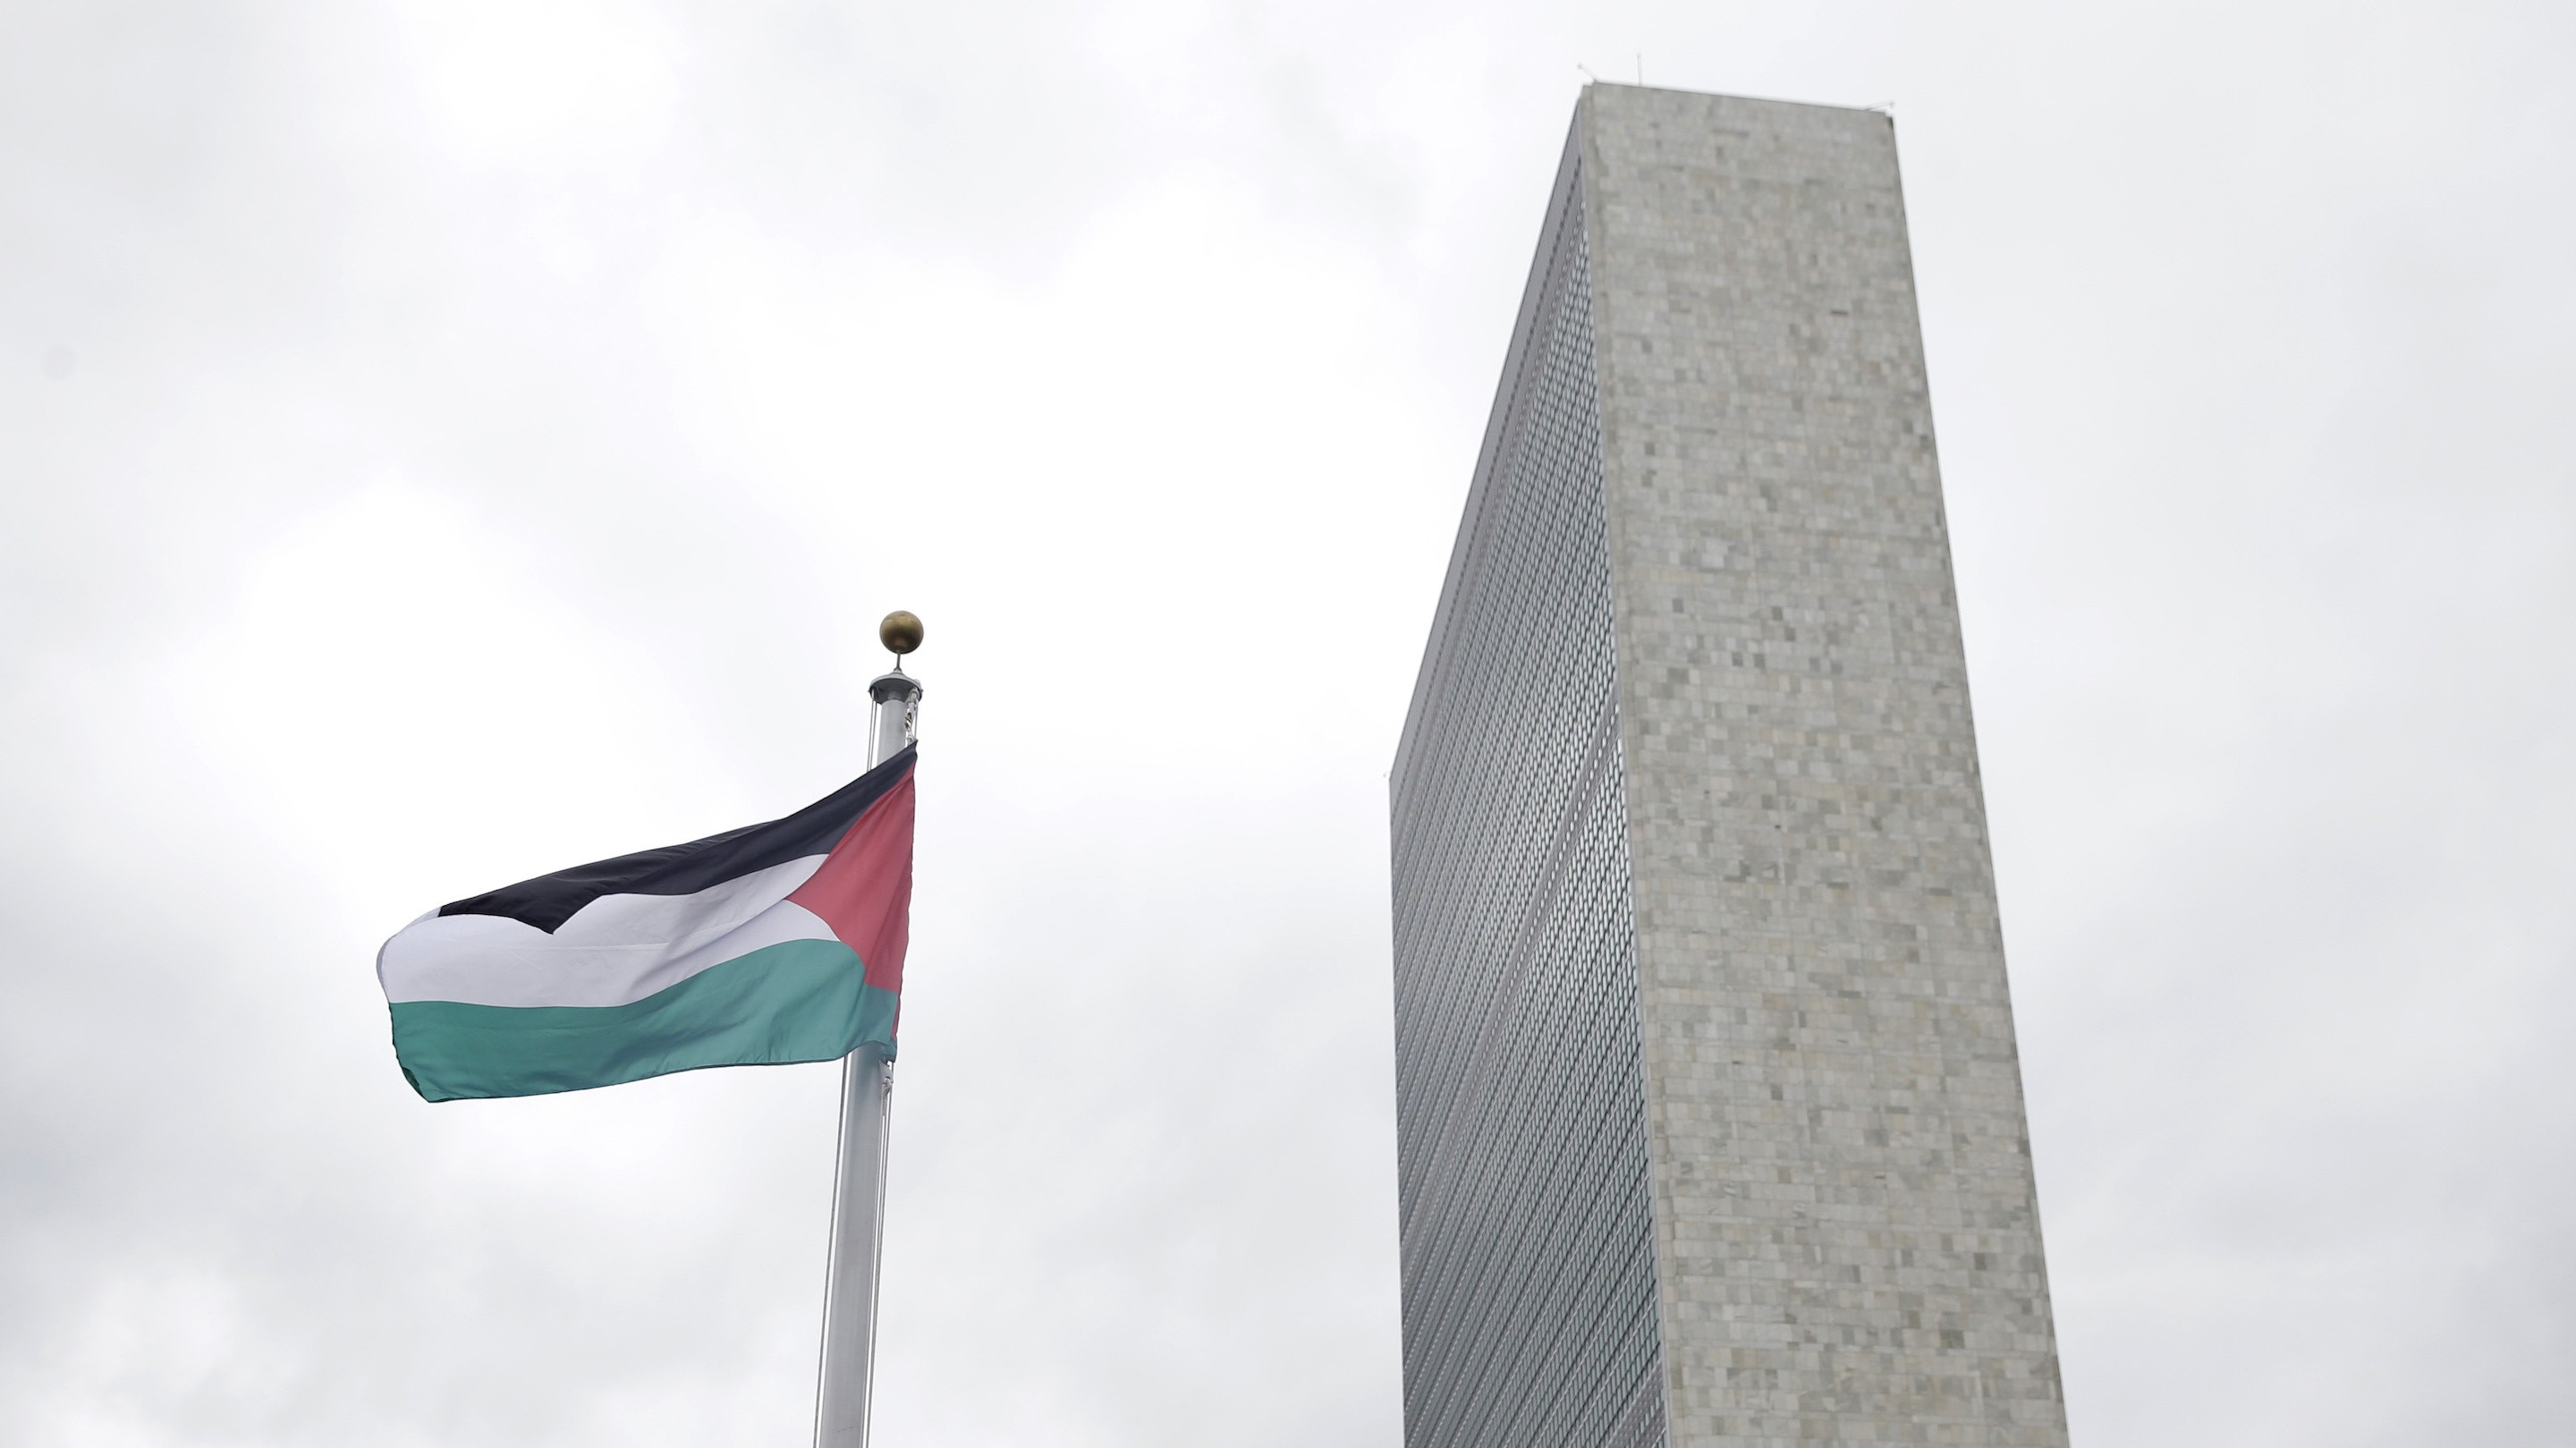 Canada Isn't a Fan of the UN's Pro-Palestinian Choice for a Human Rights Watchdog